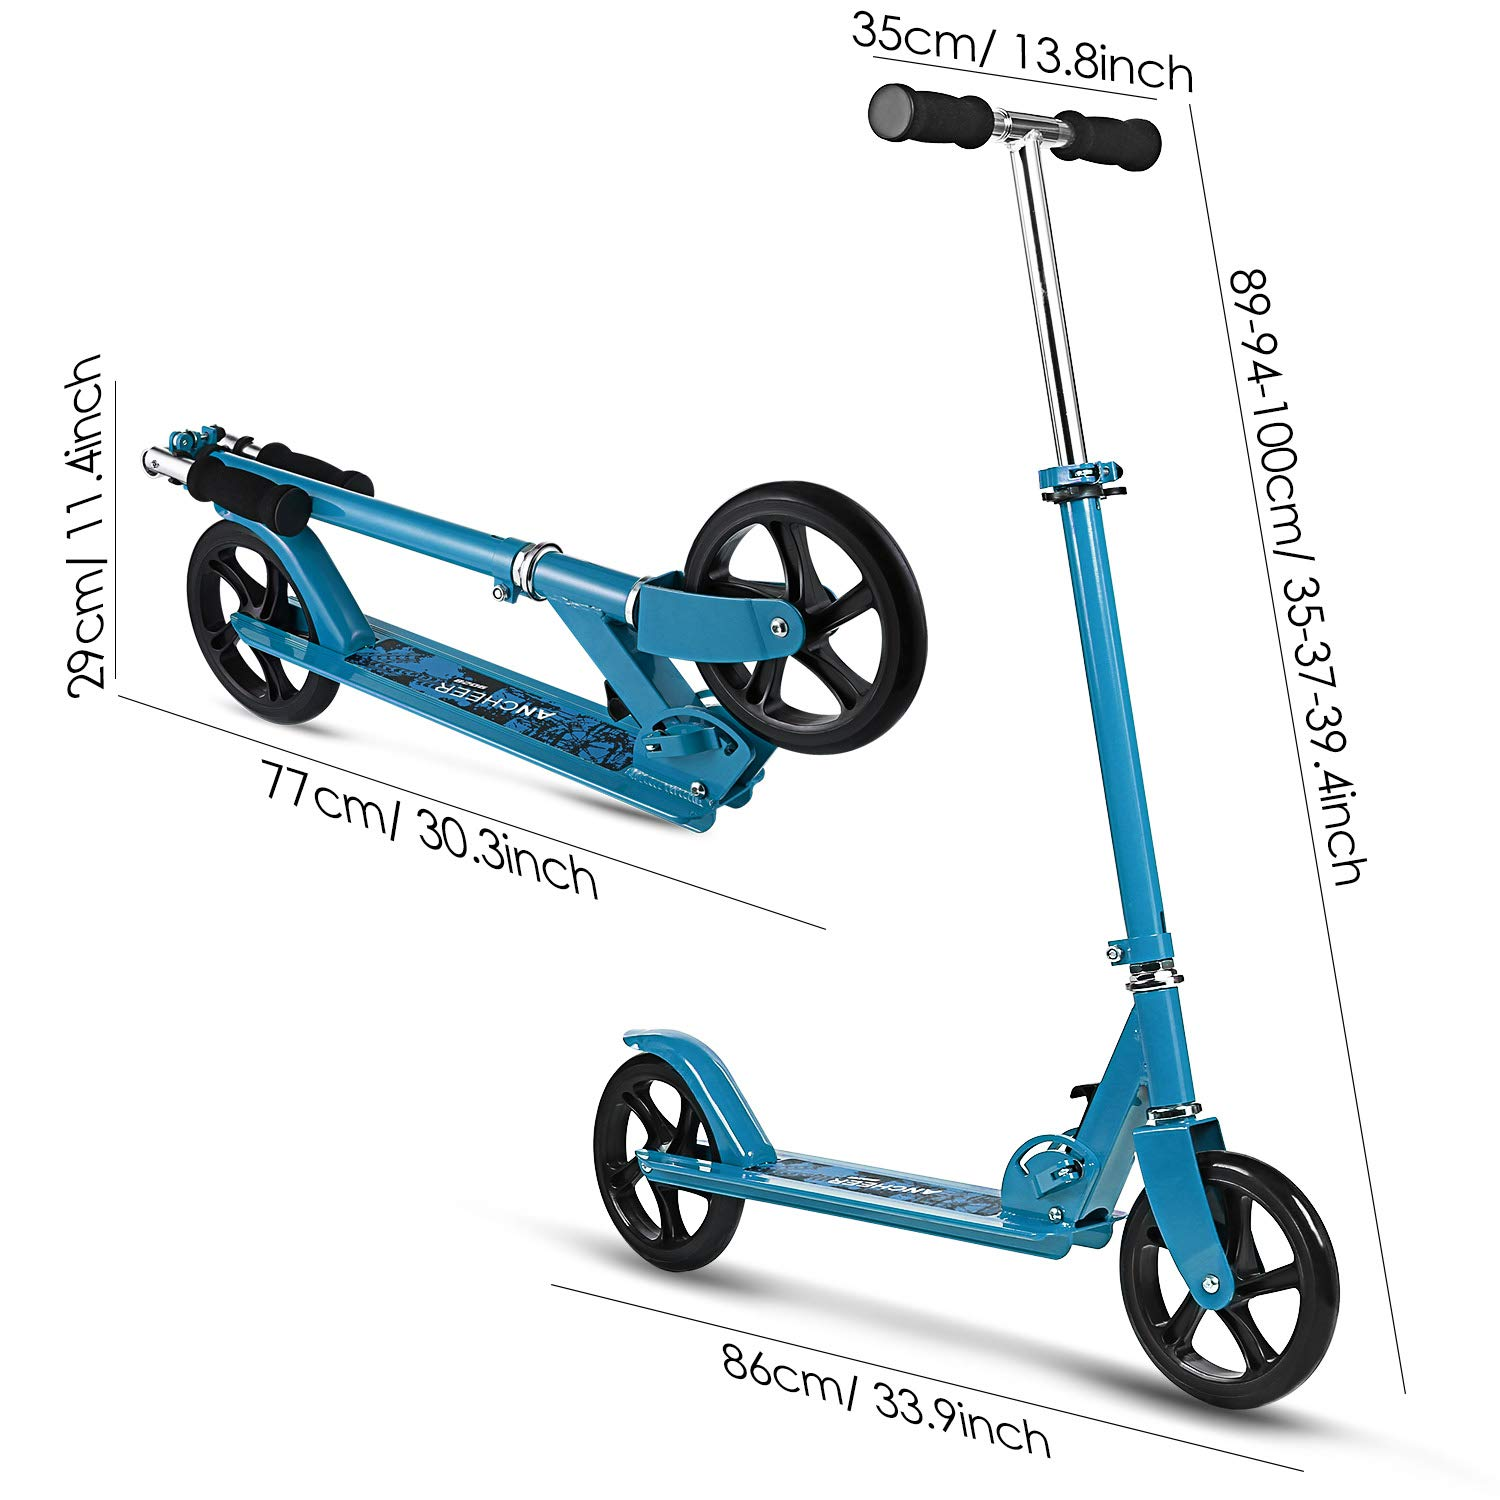 Supports 220lbs Weight Easy-Folding Adjustable Height Commuter Street Push Scooter for Adult Teen for City Urban Riders WeSkate Kick Scooter with 2 Big Wheels